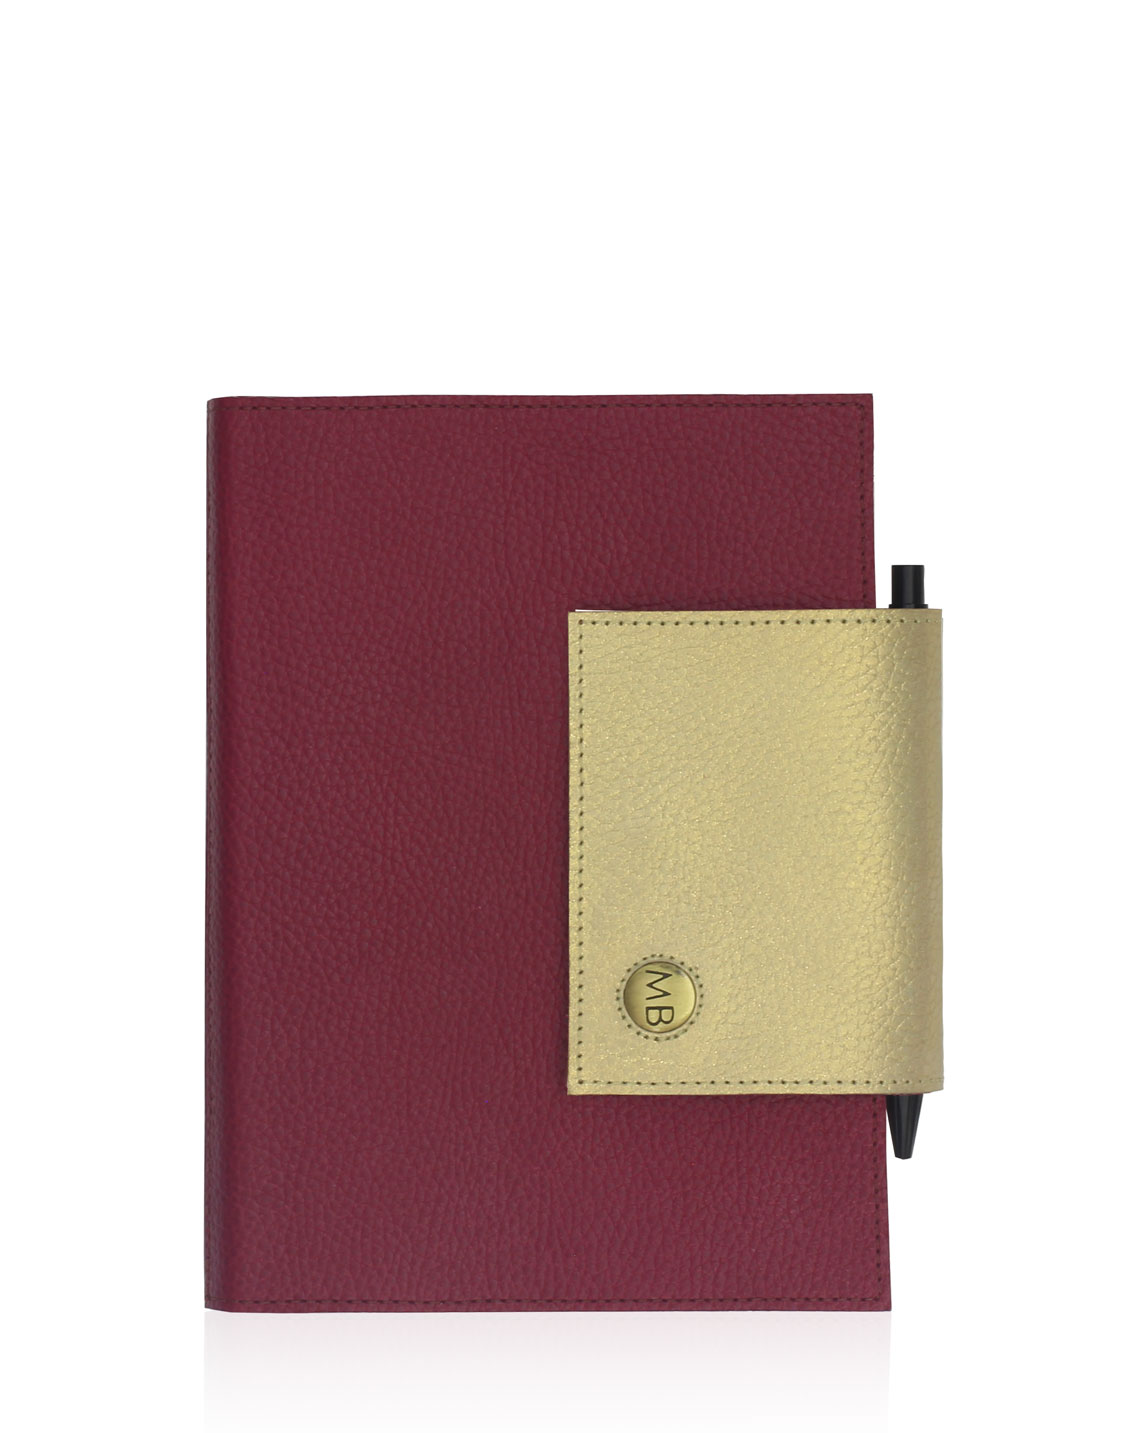 Agenda AG-103 Color Fucsia